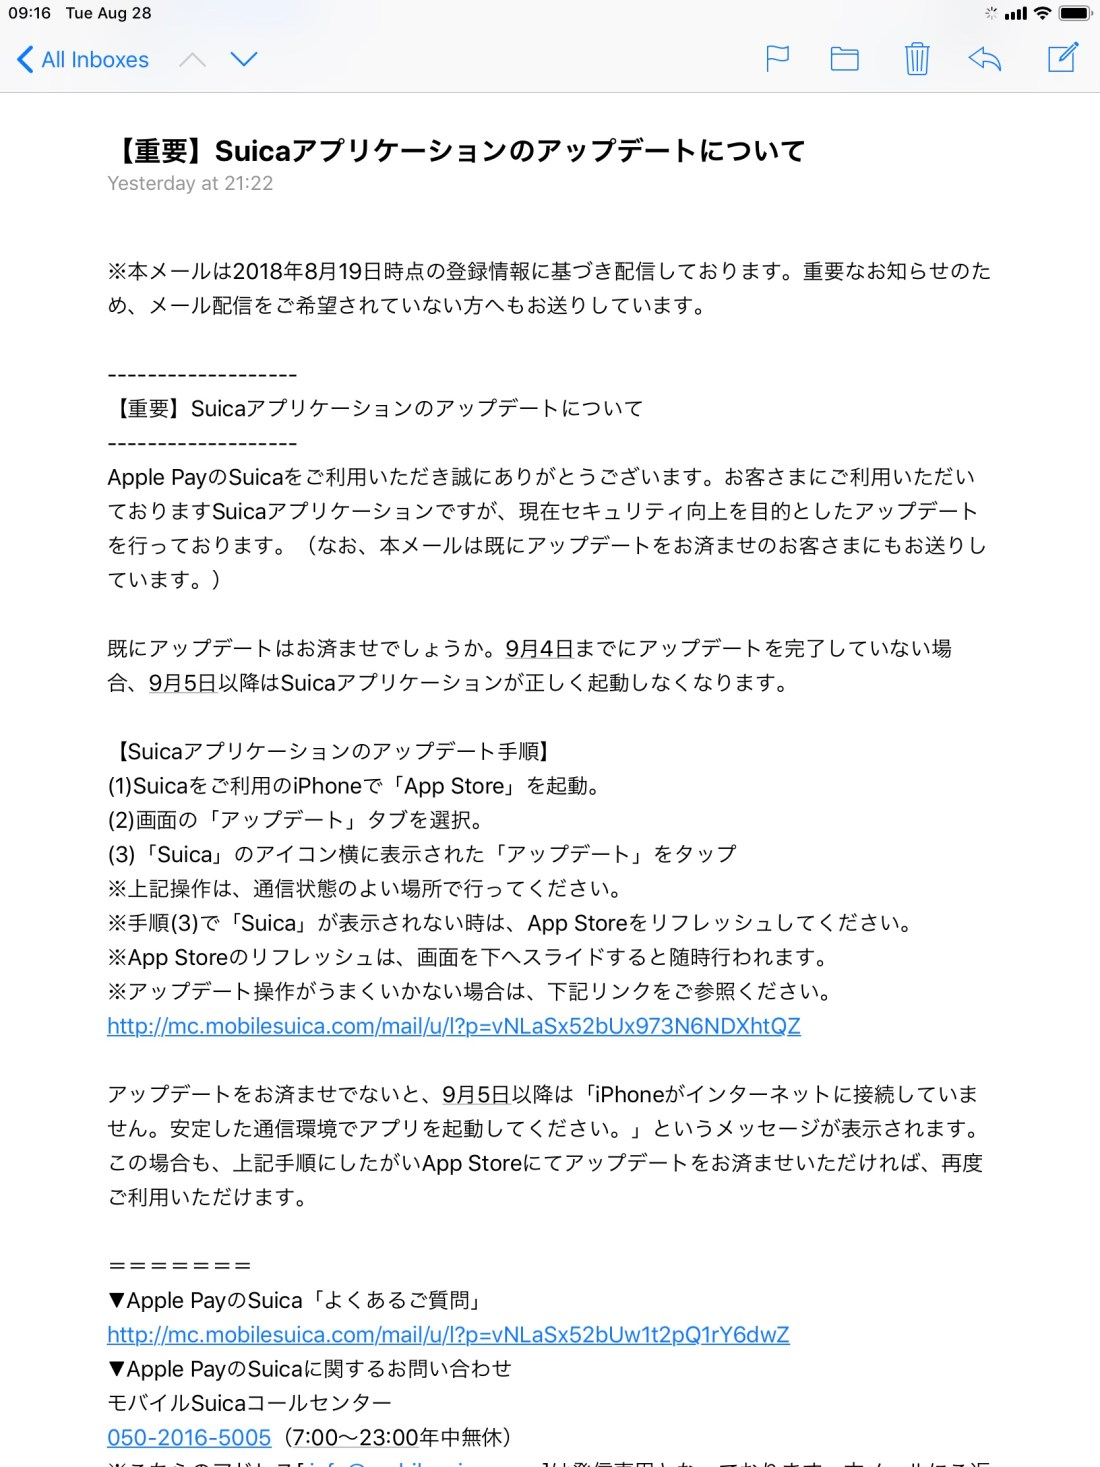 JR East Suica App Security Update Notice